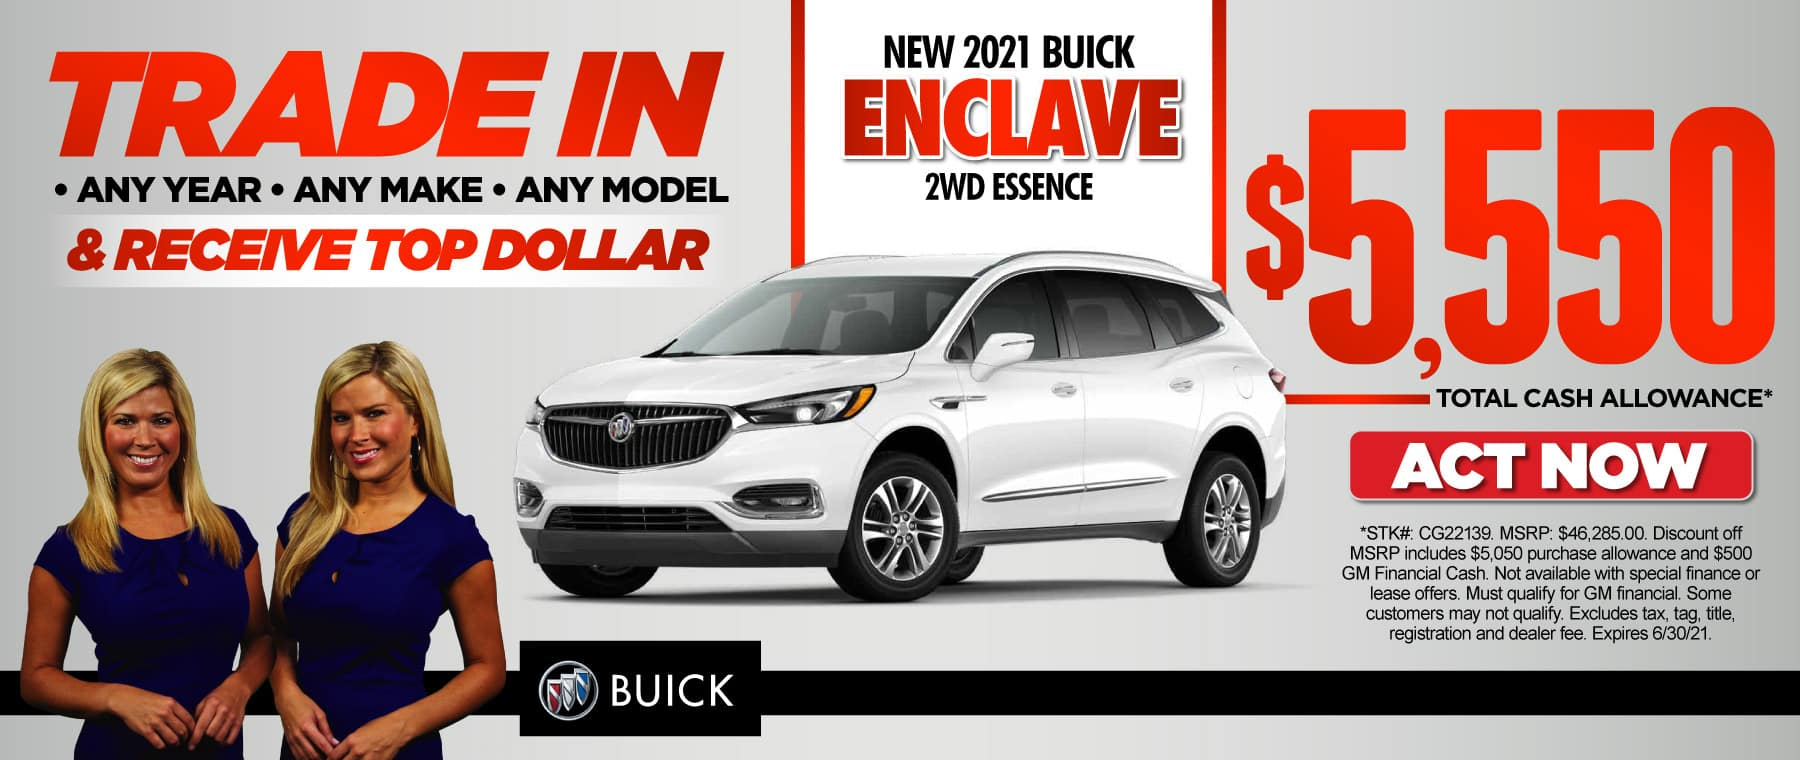 New 2021 Buick Enclave 2WD Essence | $5,550 Total Cash Allowance | ACT NOW